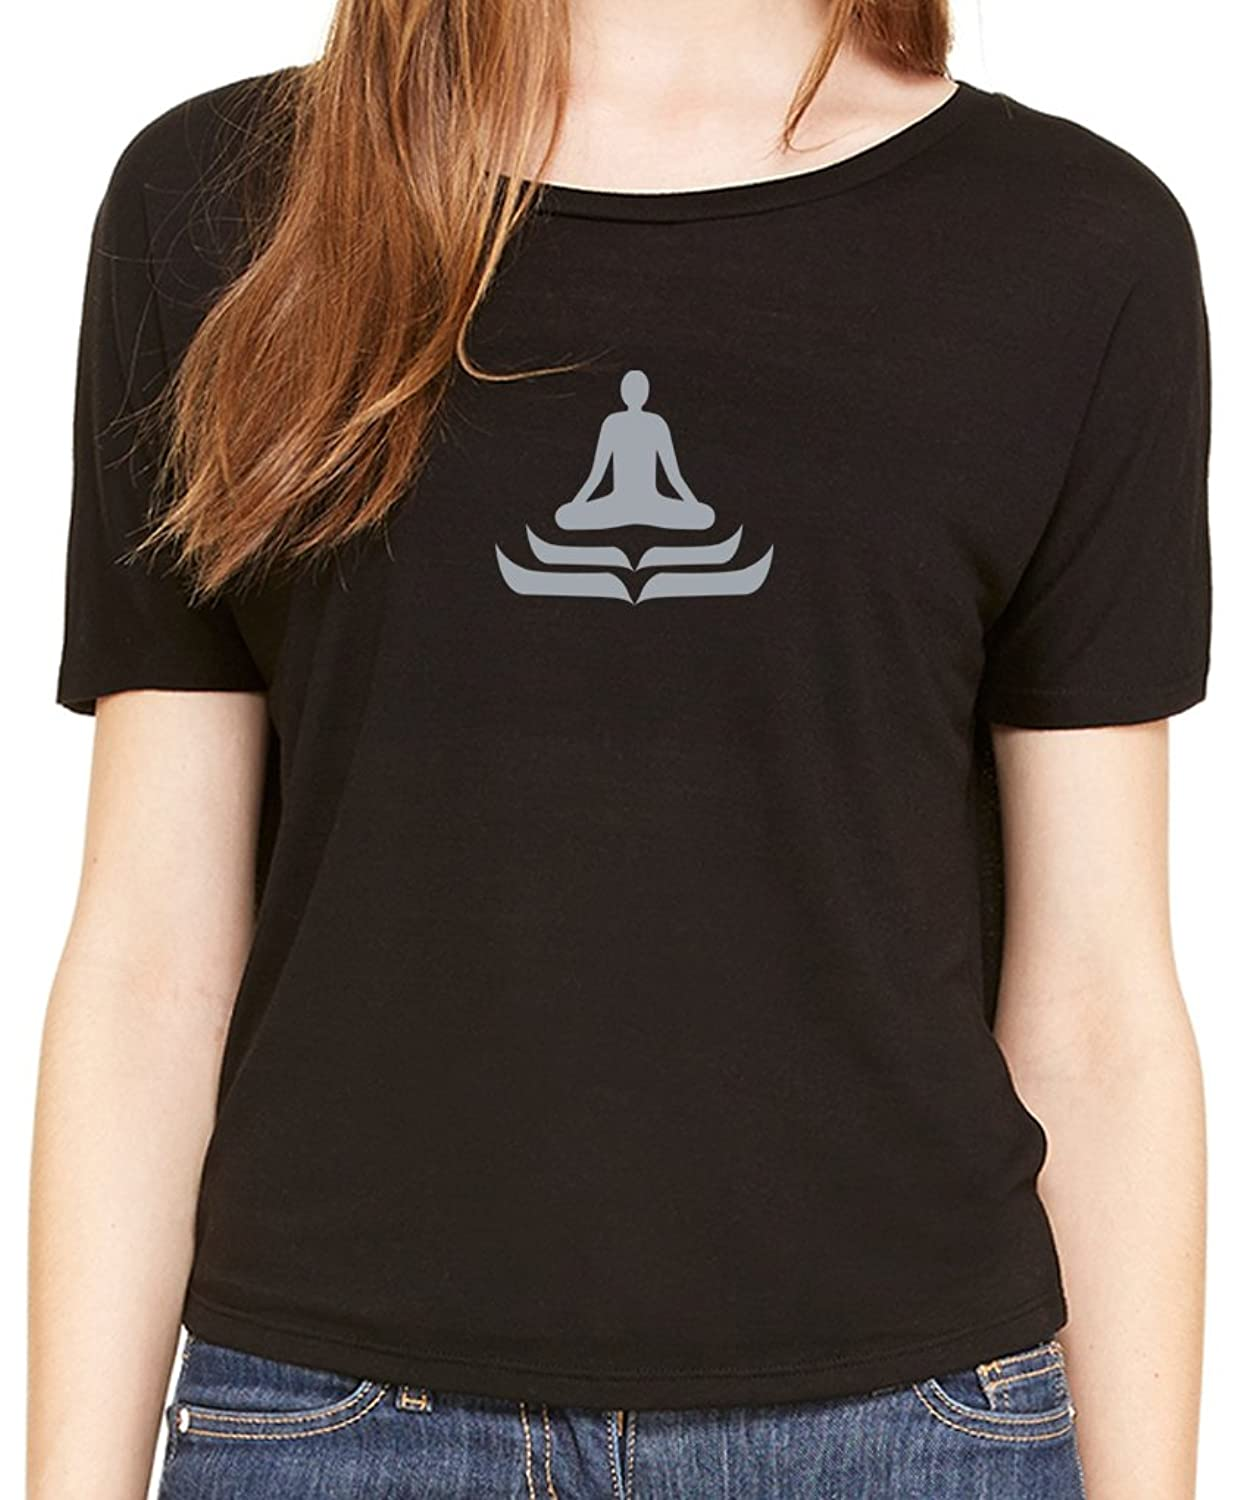 "Yoga Clothing For You Ladies ""Lotus Pose"" Open Back Shirt"